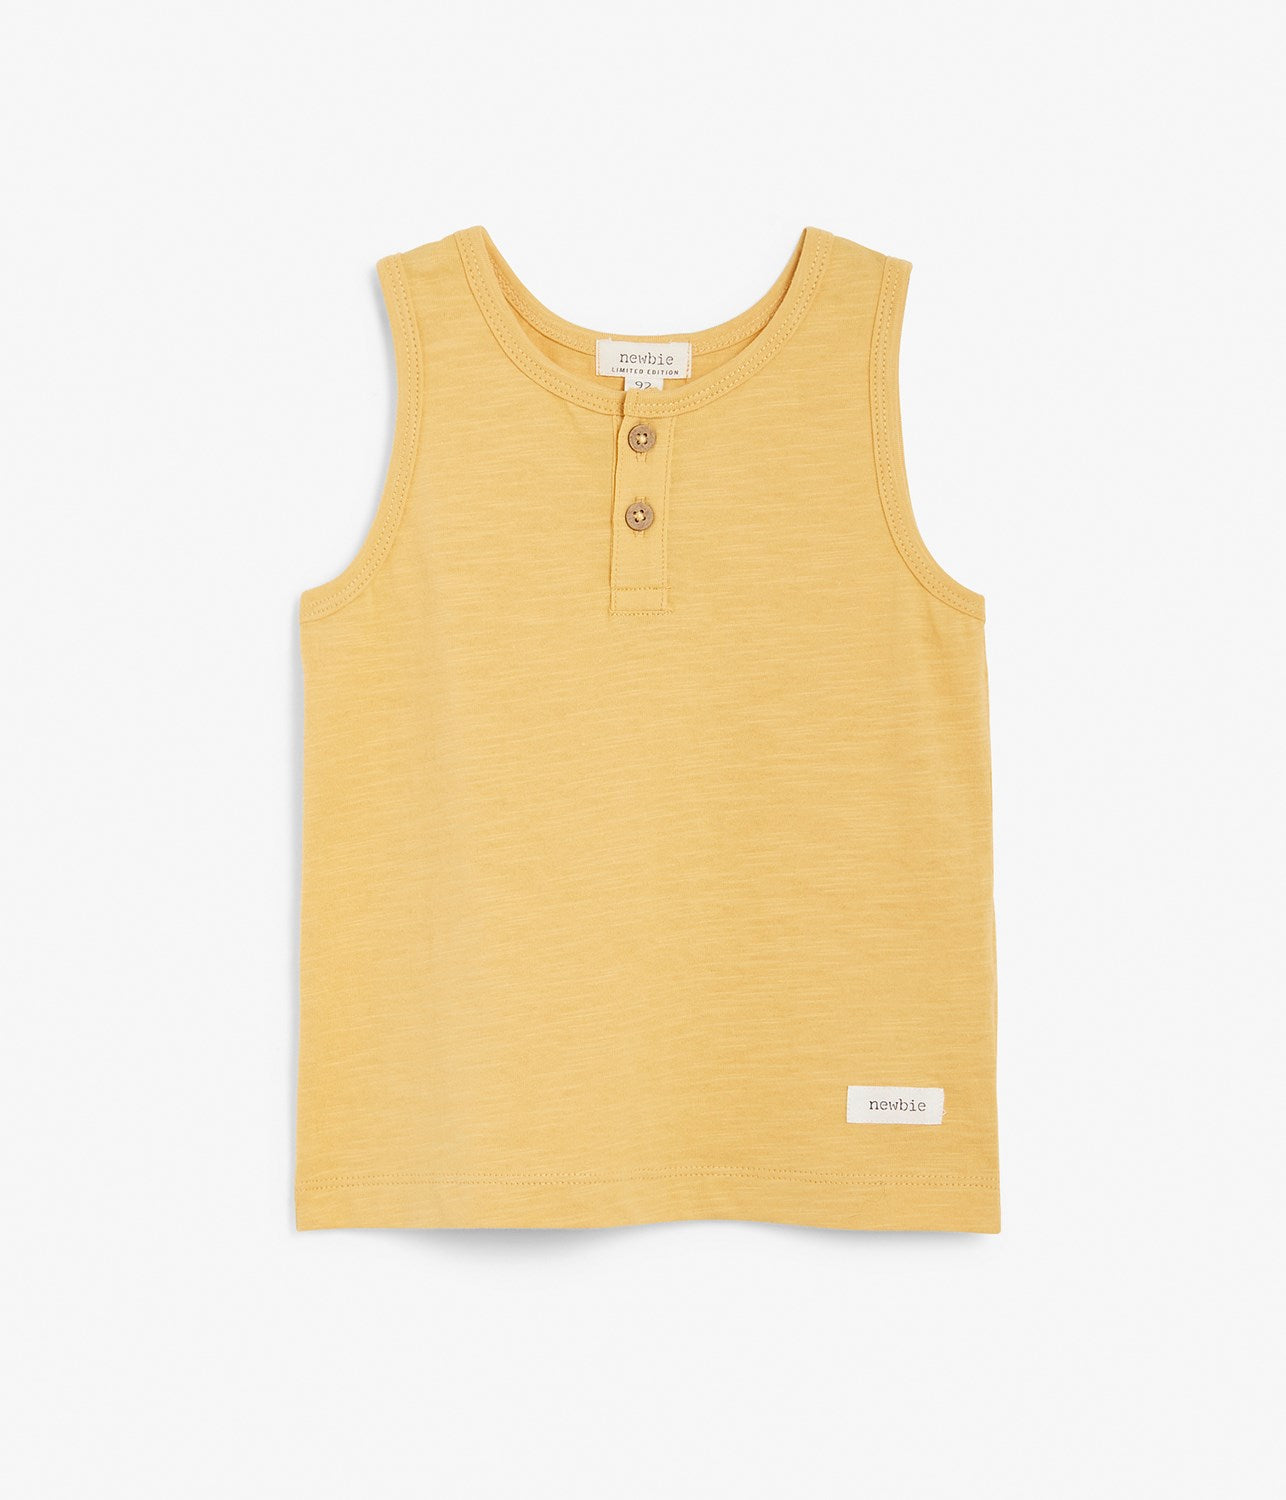 Kids yellow tank top with wooden buttons